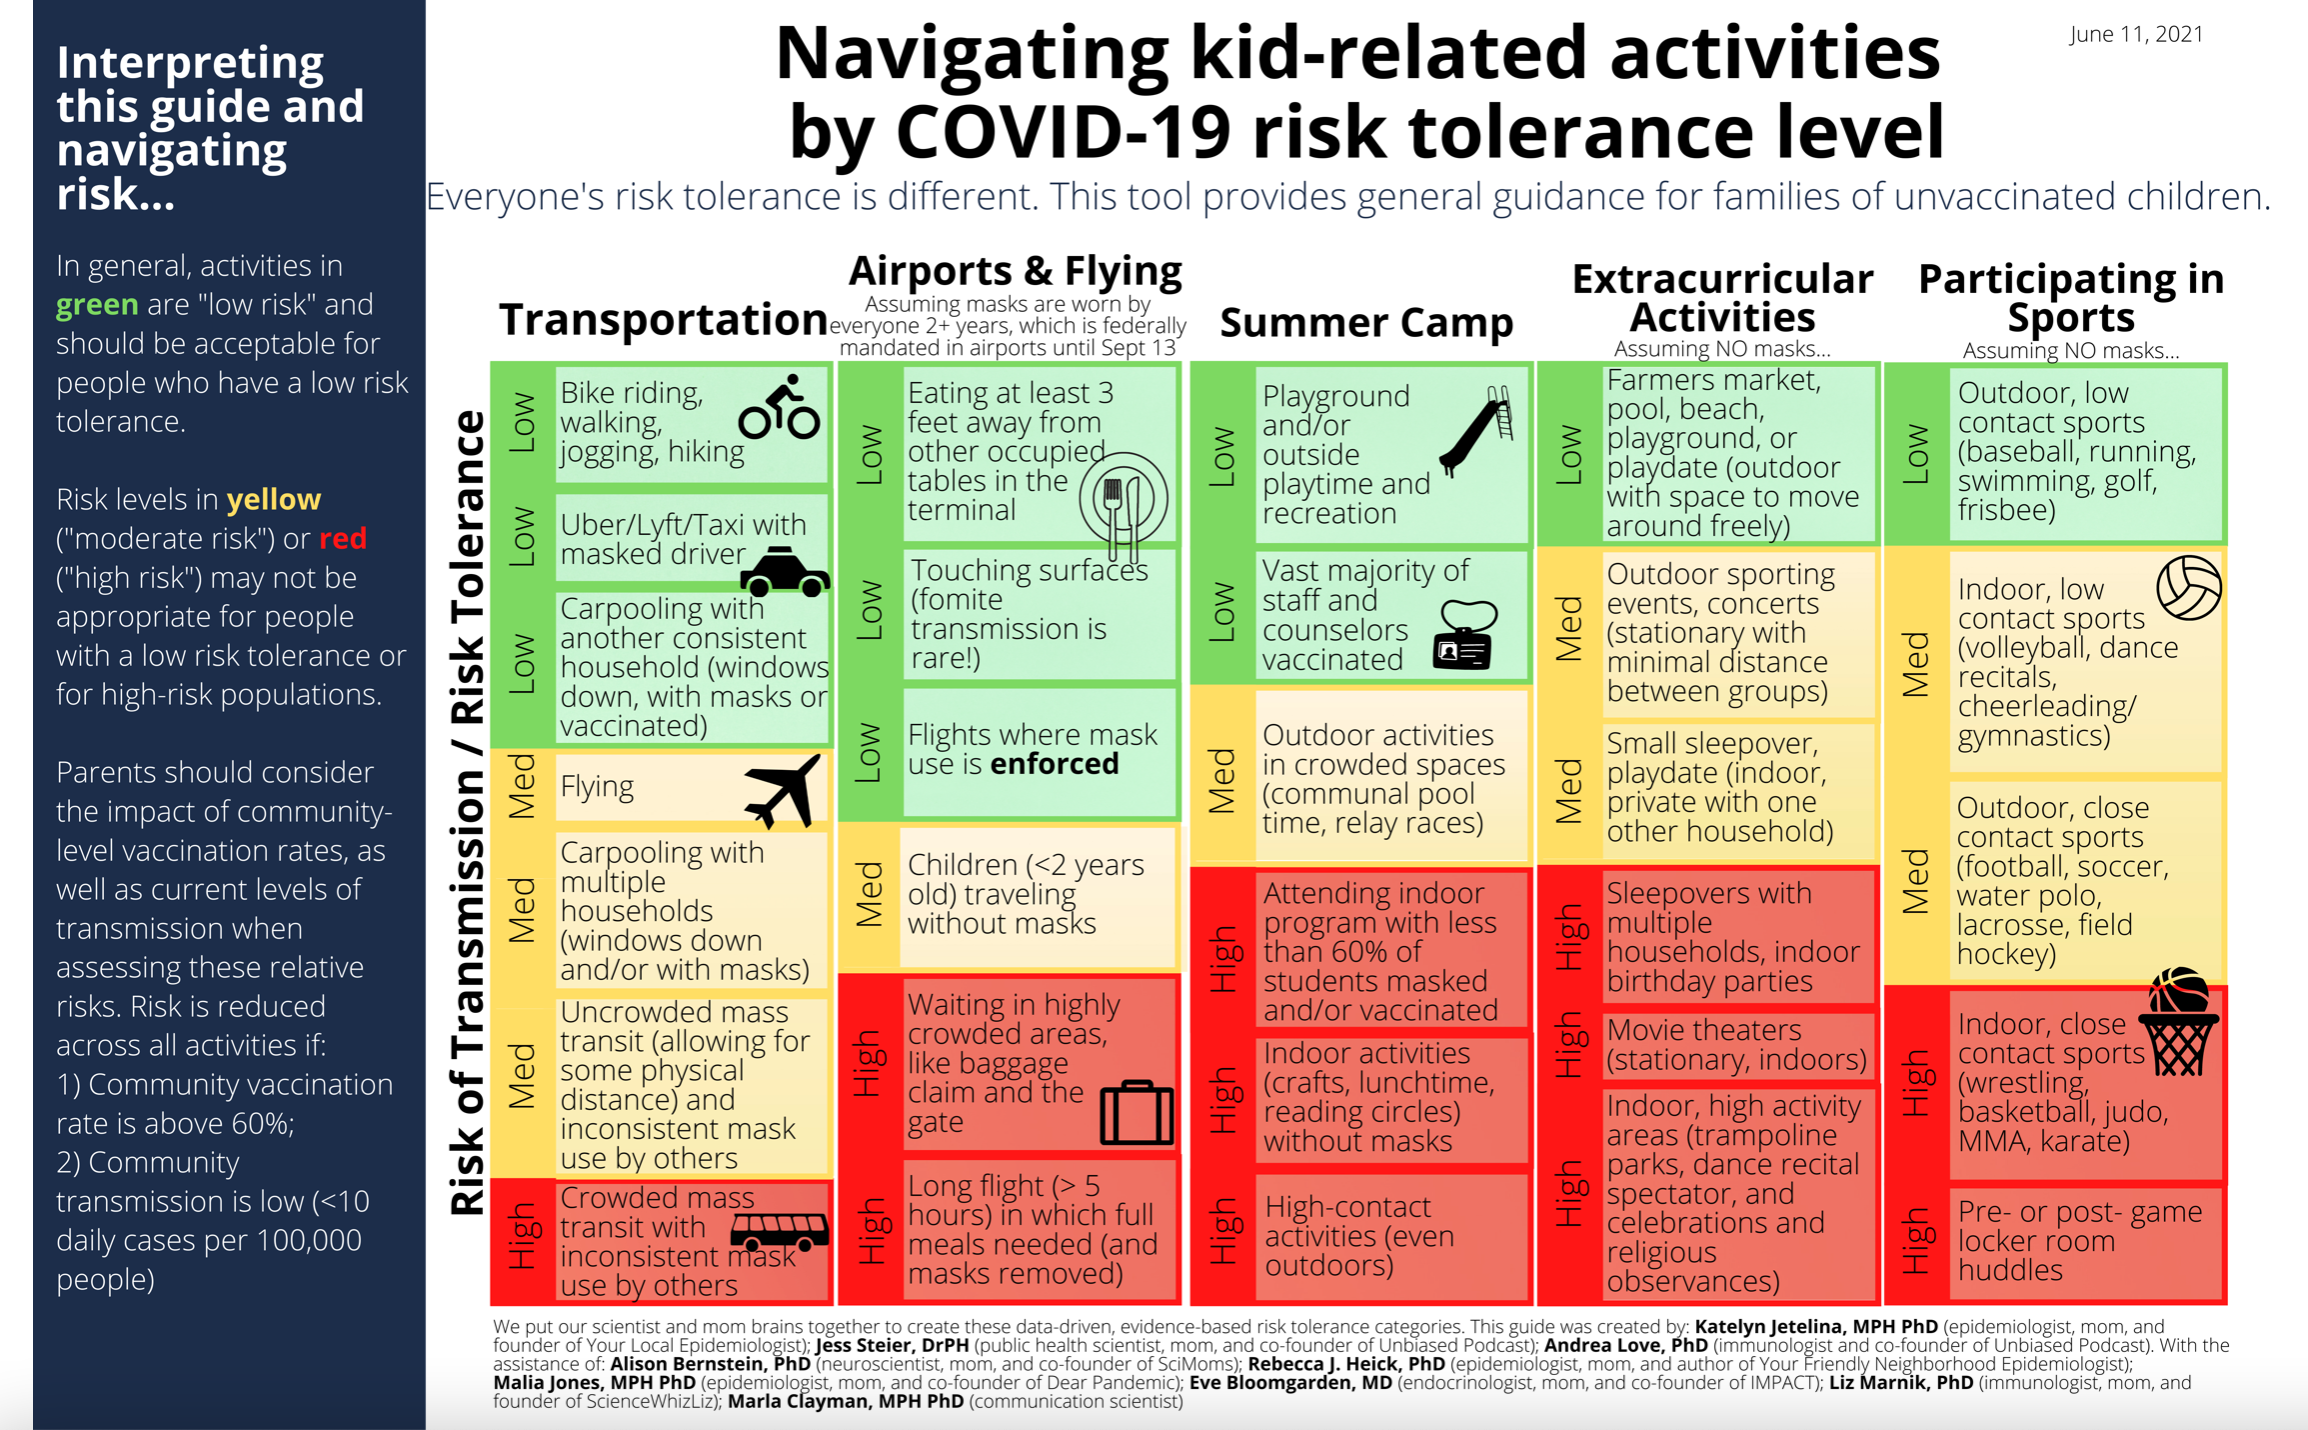 COVID risk levels for kids